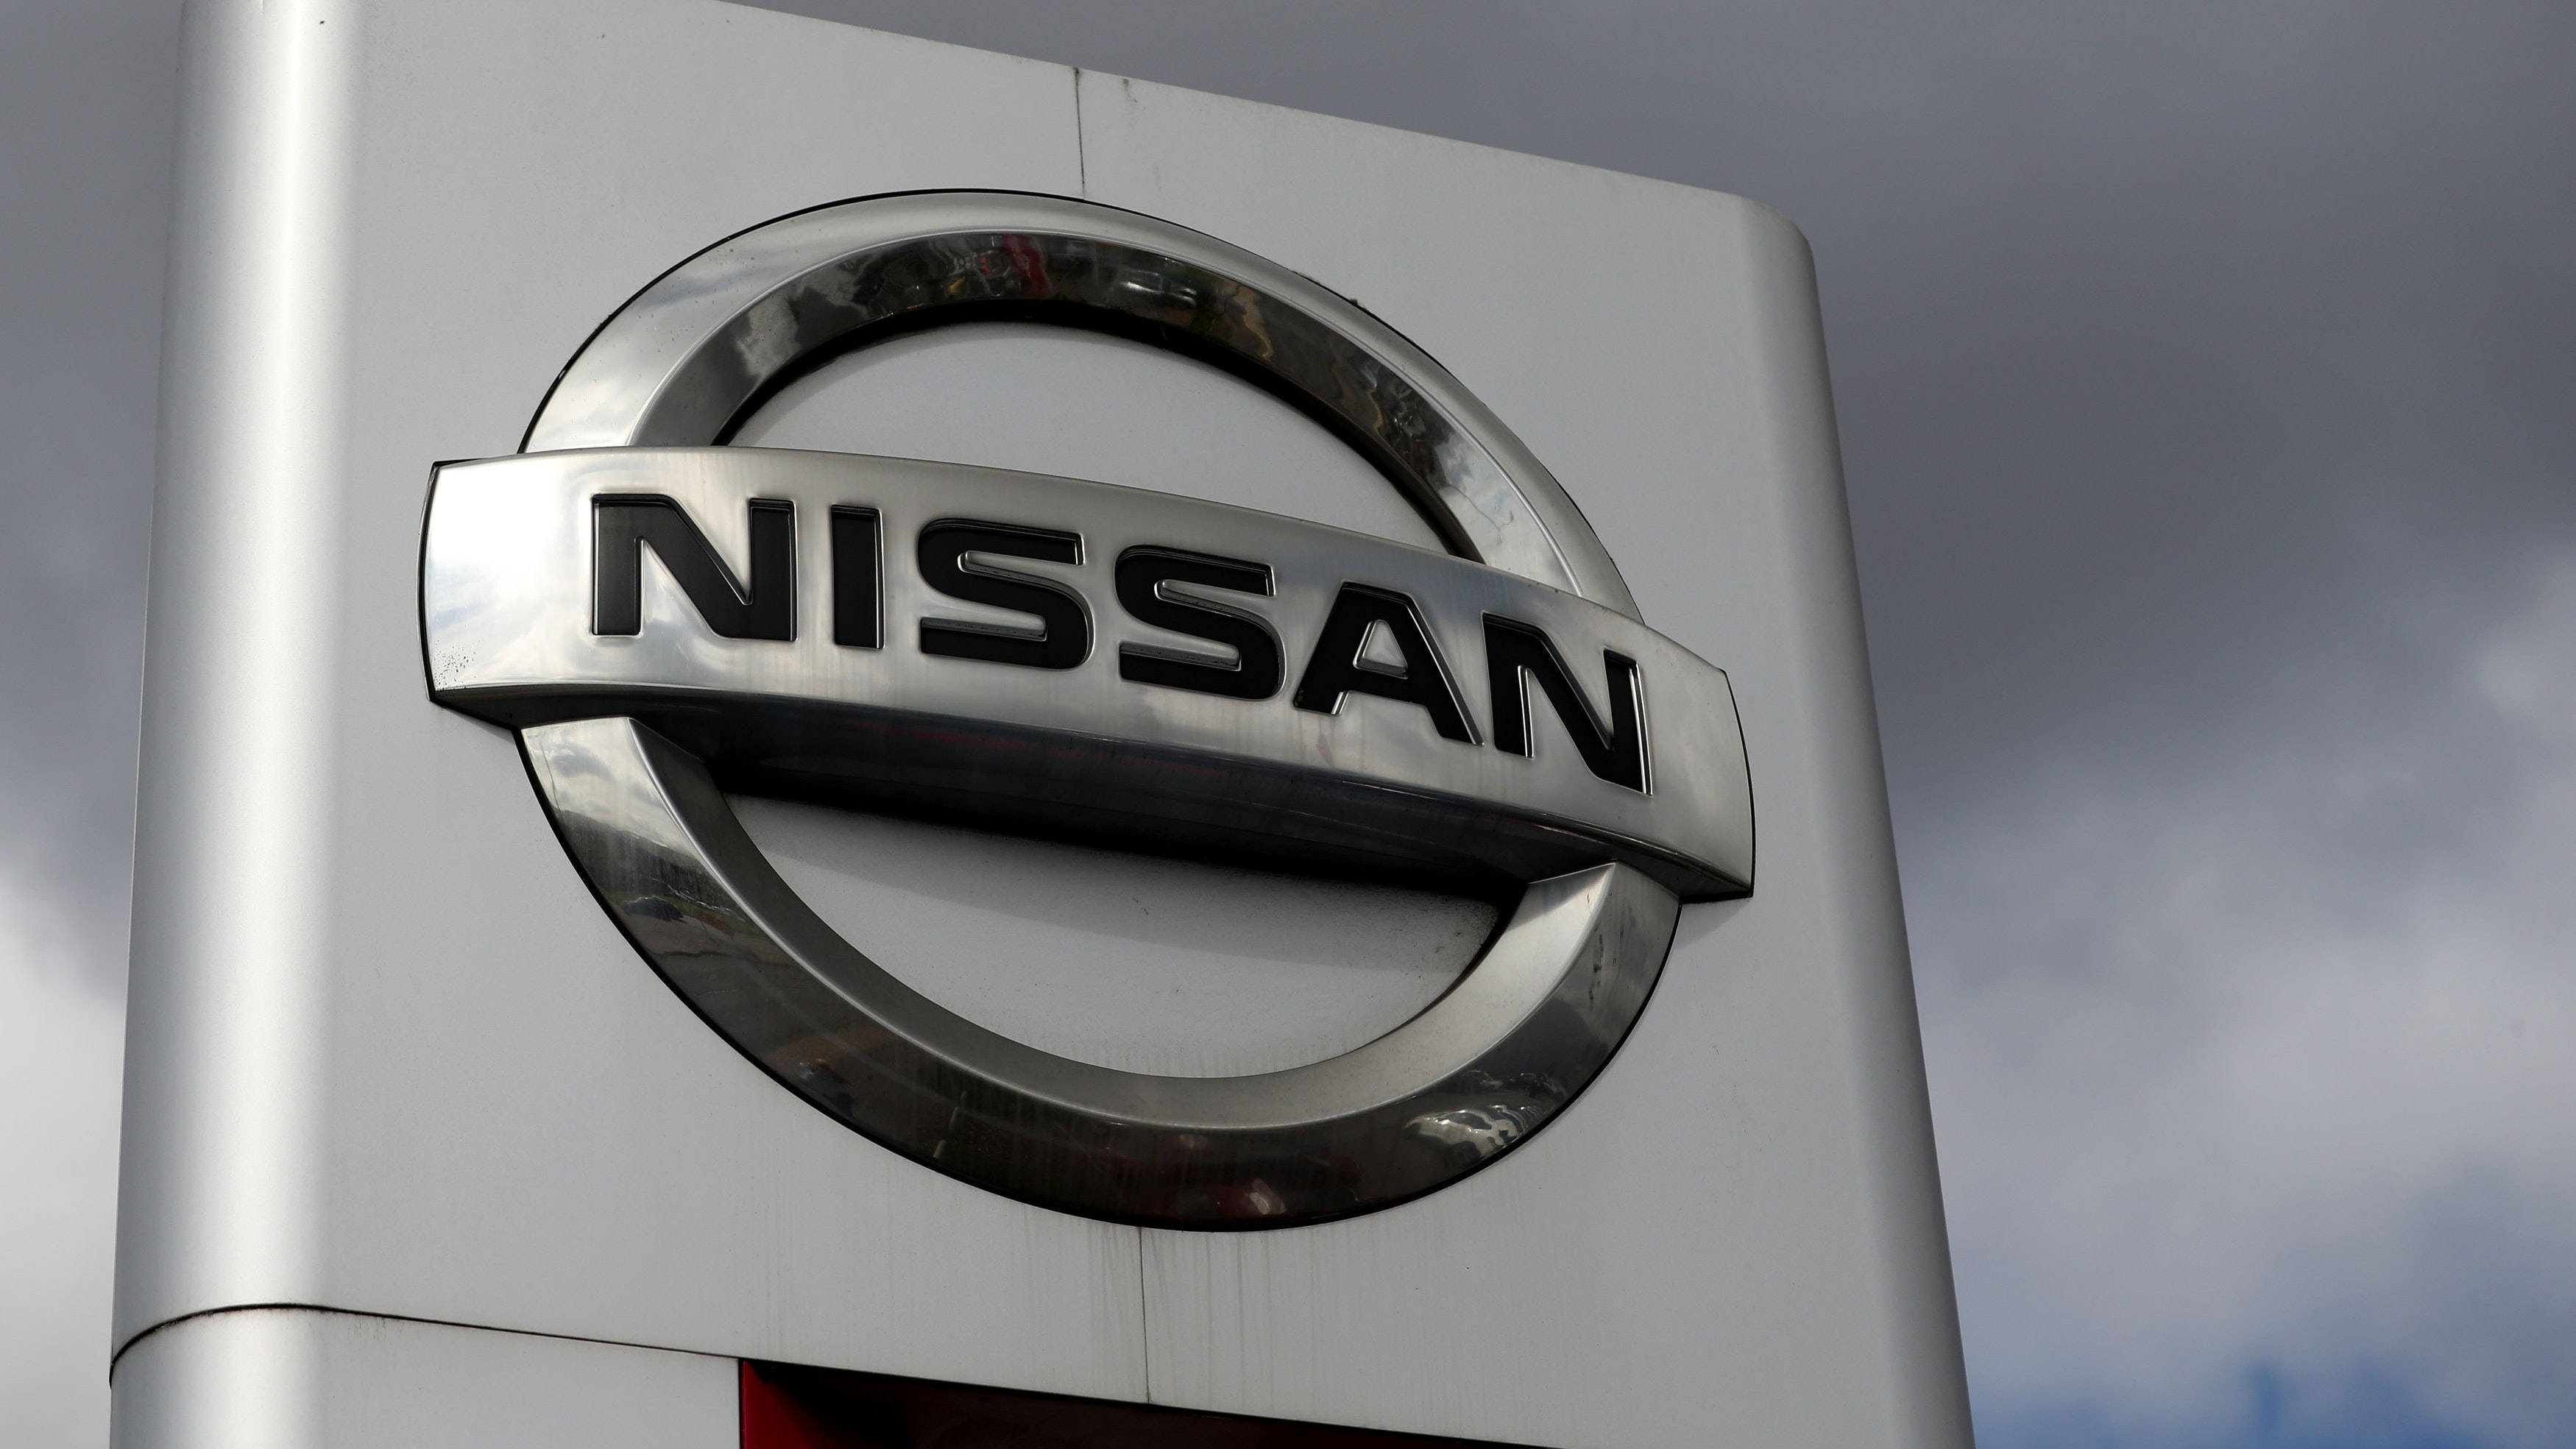 Nissan shelving plans to build new X-Trail in United Kingdom, claims report